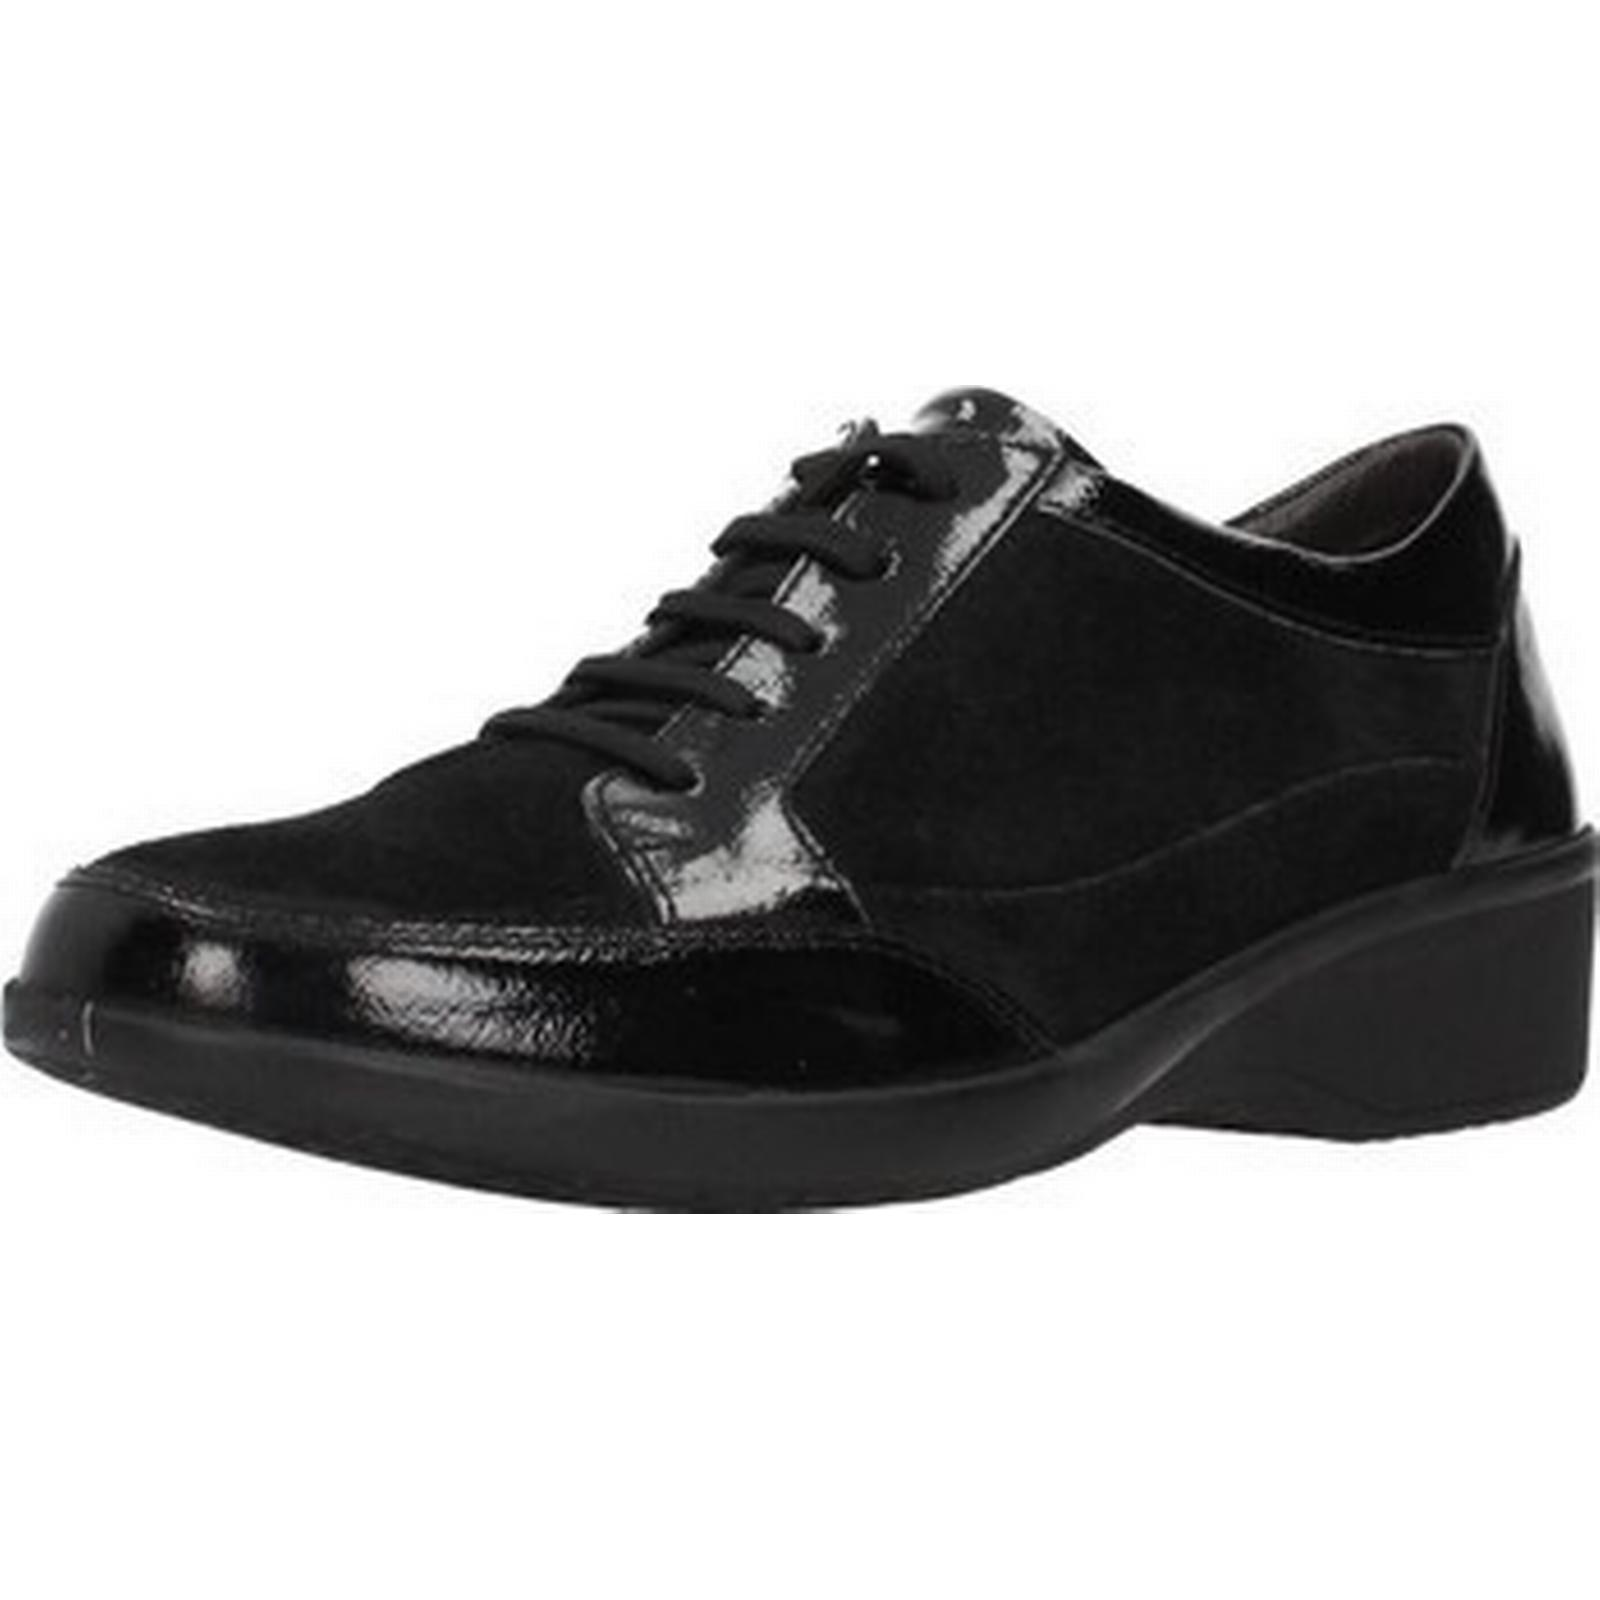 3d6878bc3 ... Spartoo.co.uk Stonefly PASEO II women s Casual Shoes in Black Black  Black 88db60